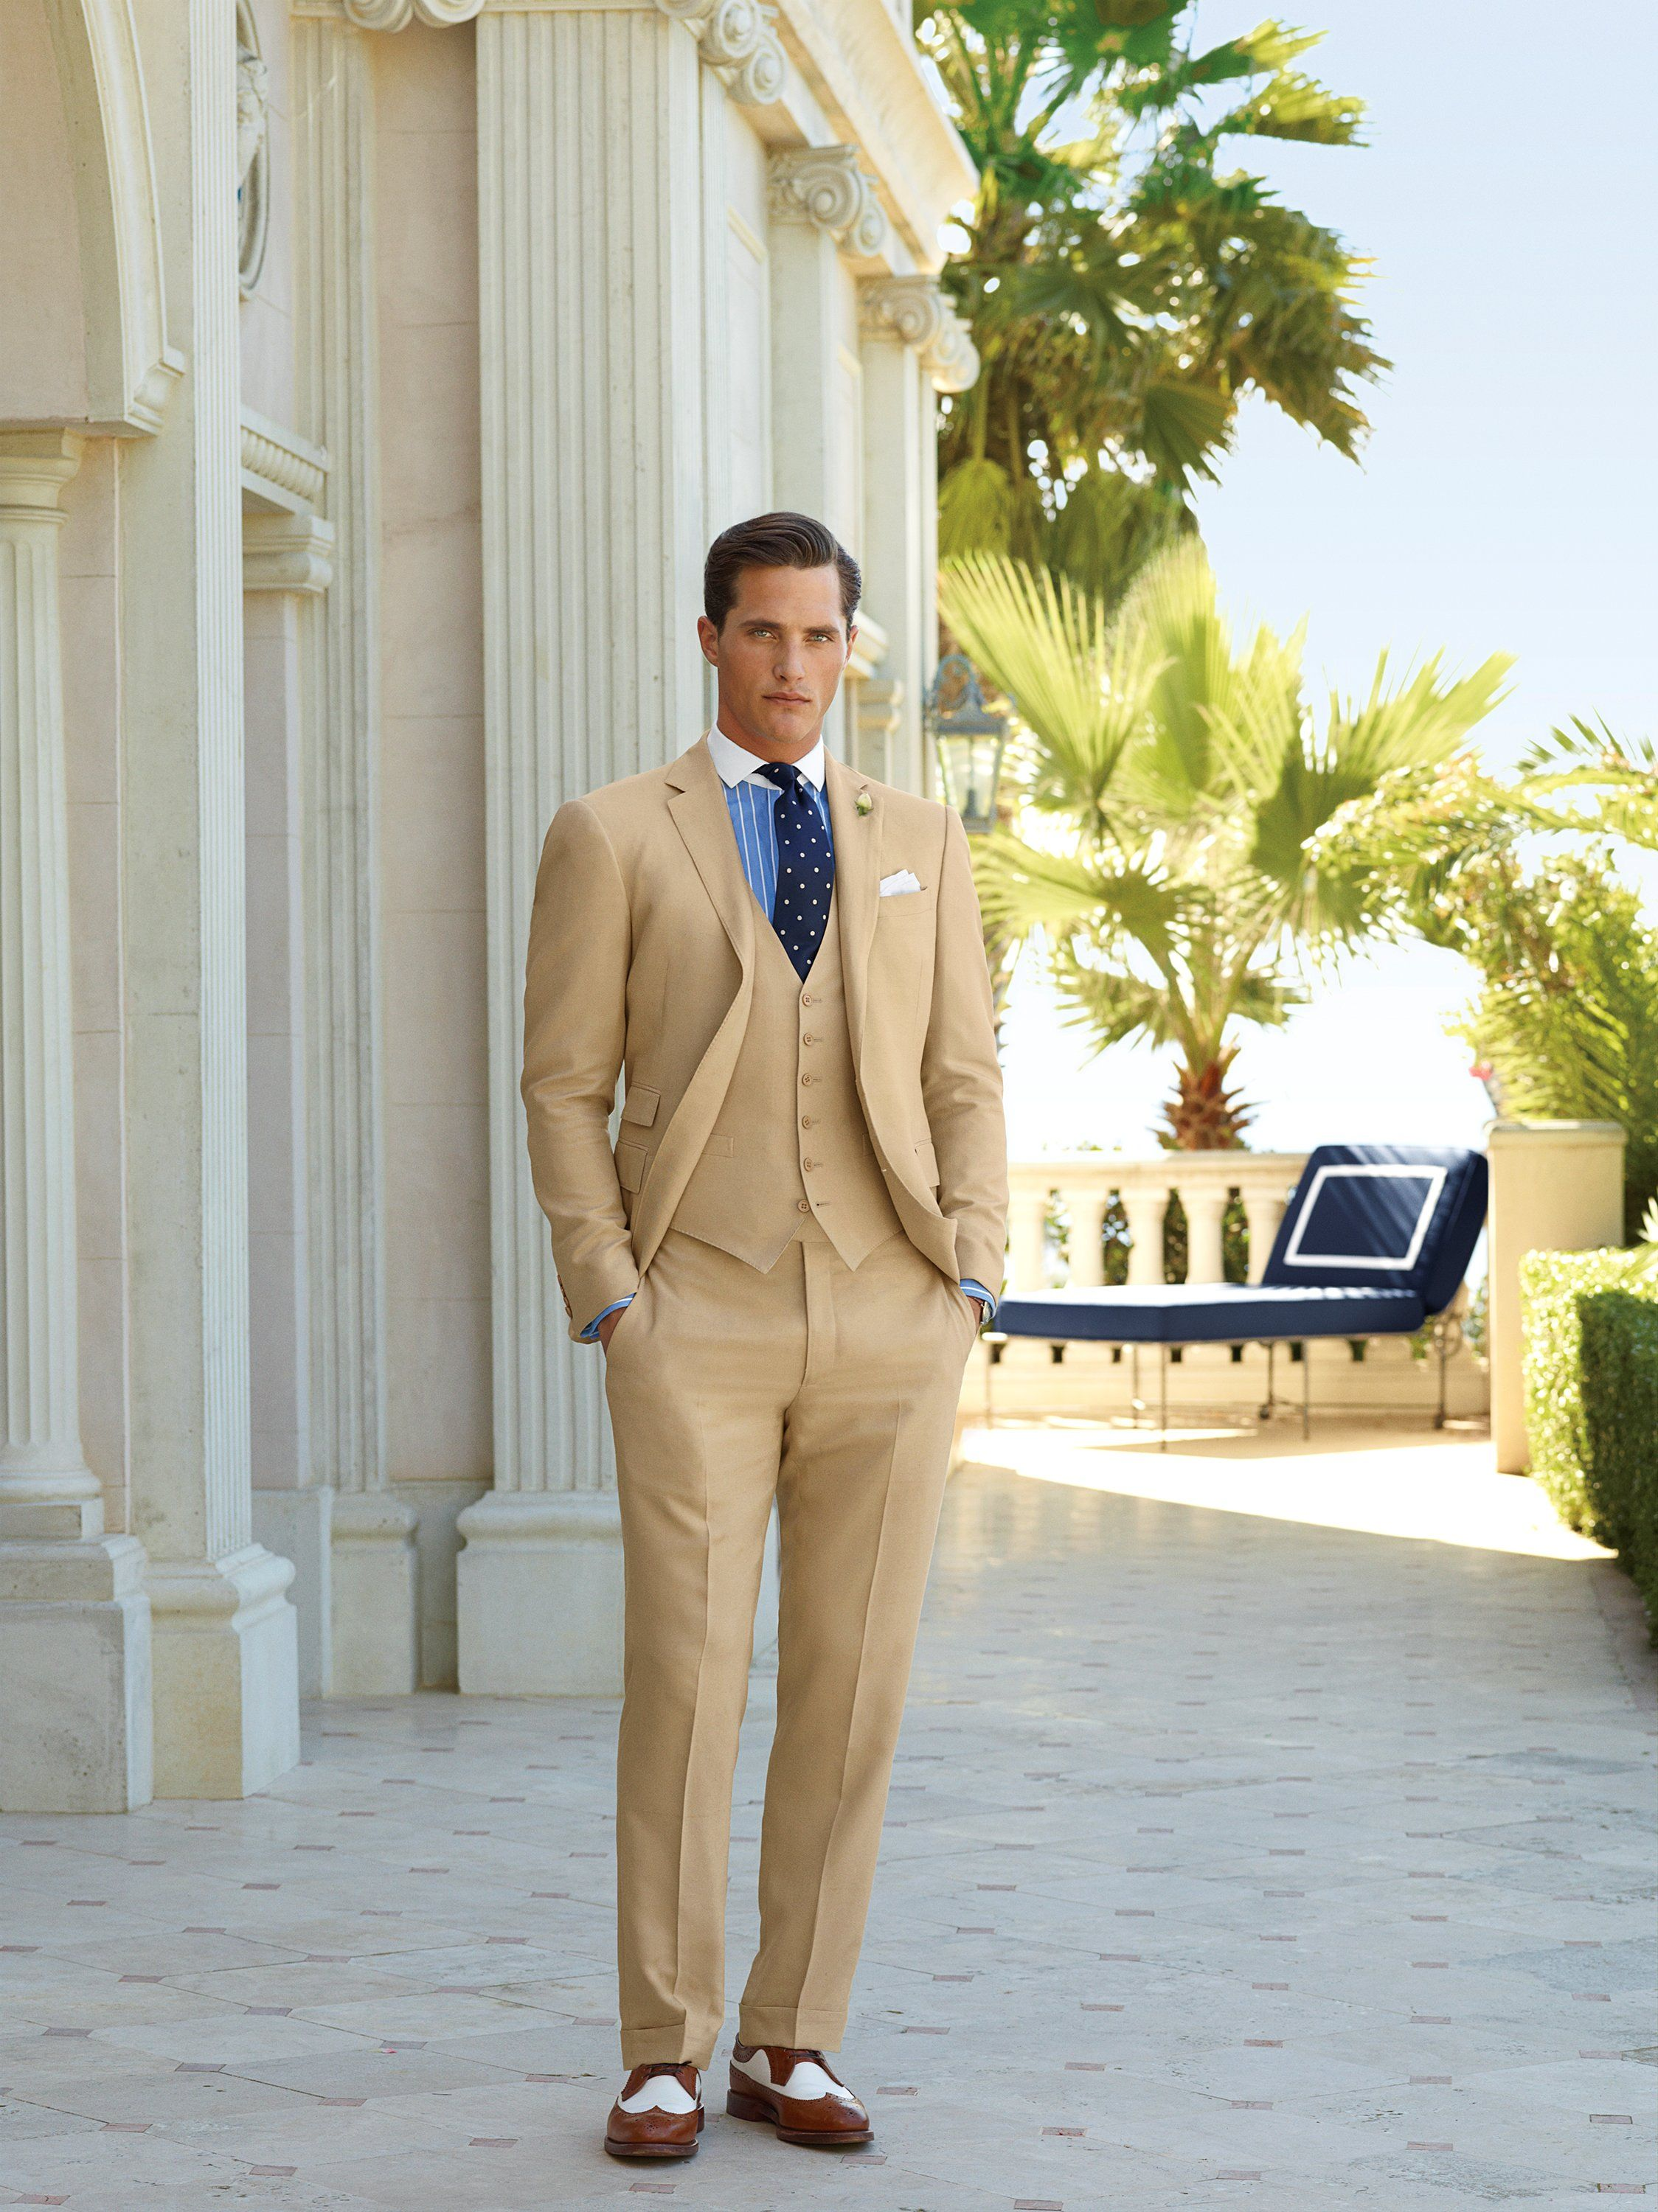 Ollie Rl Purple Label Linen Tailored 2013 Well Dressed